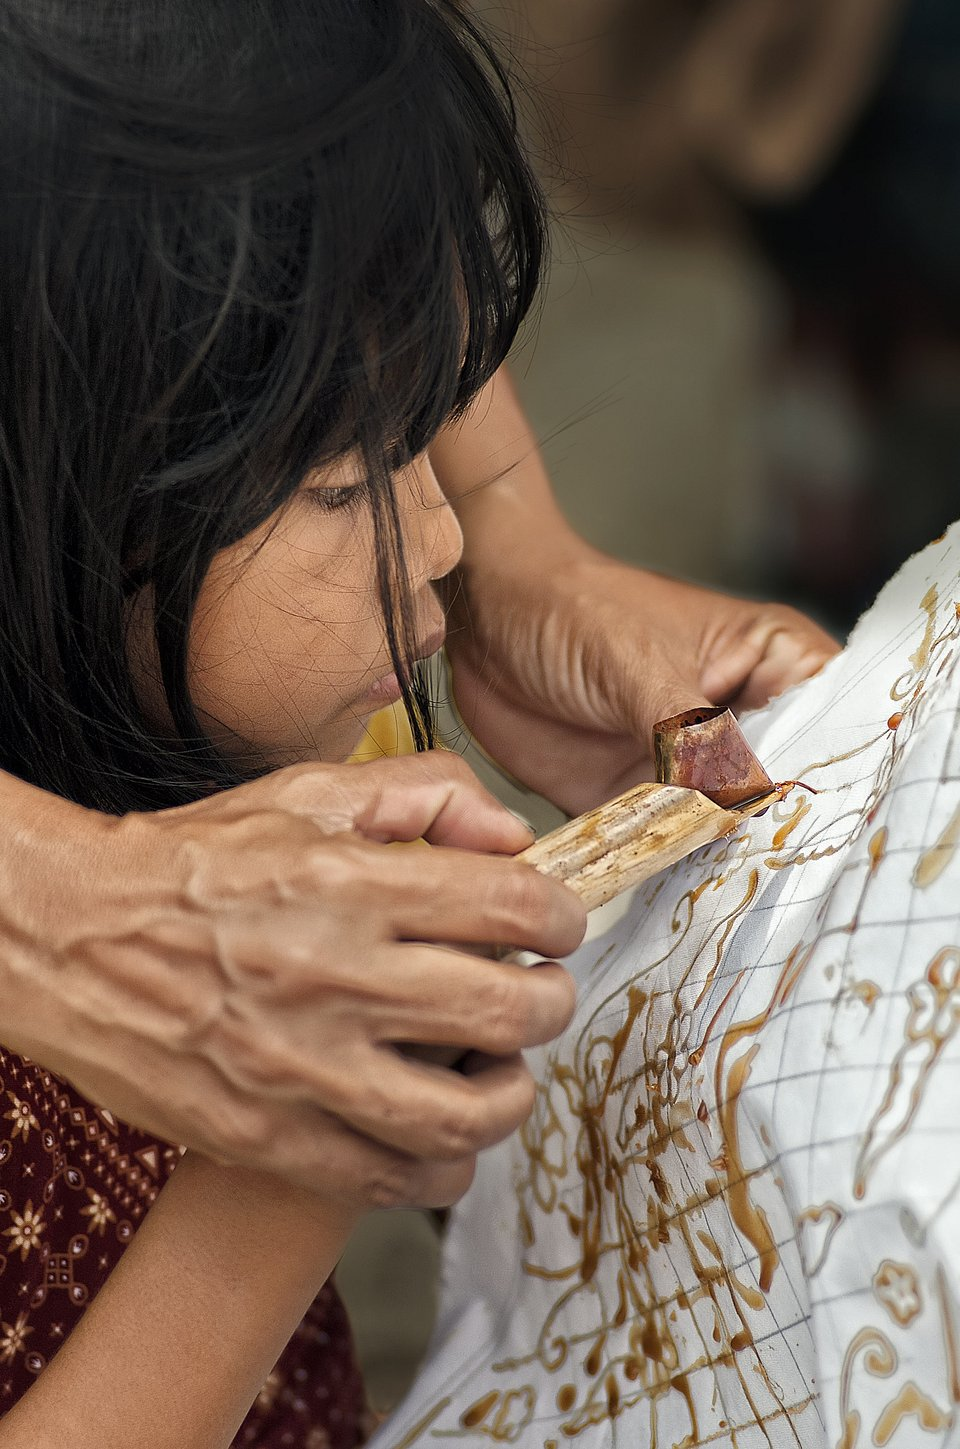 This little girl is learning the traditional Indonesian art and craft of batik. (Wibowo Rahardjo/Agora)